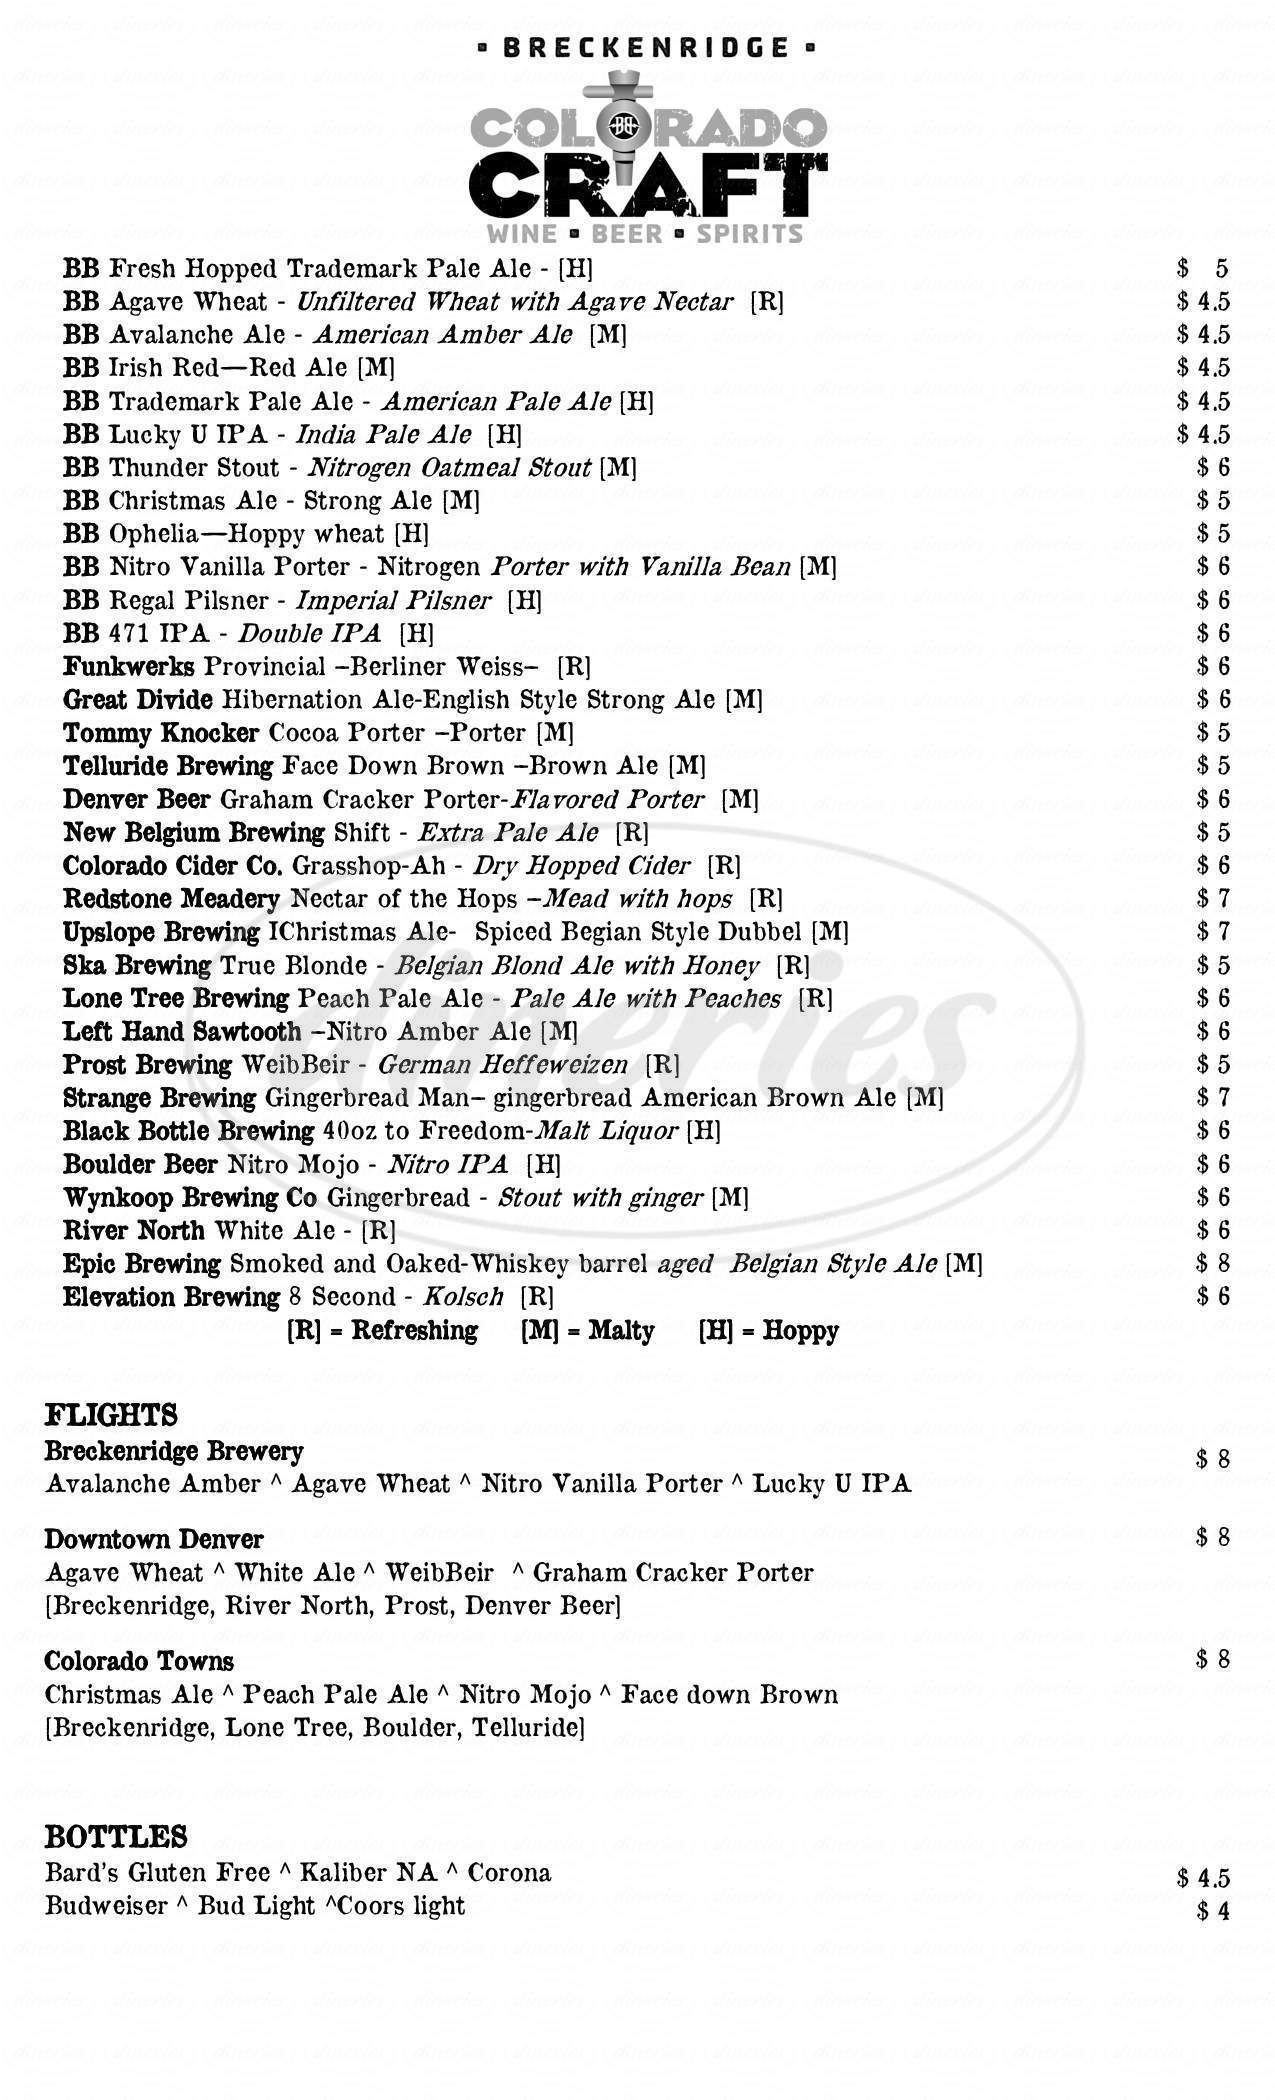 menu for Breckenridge Brewery